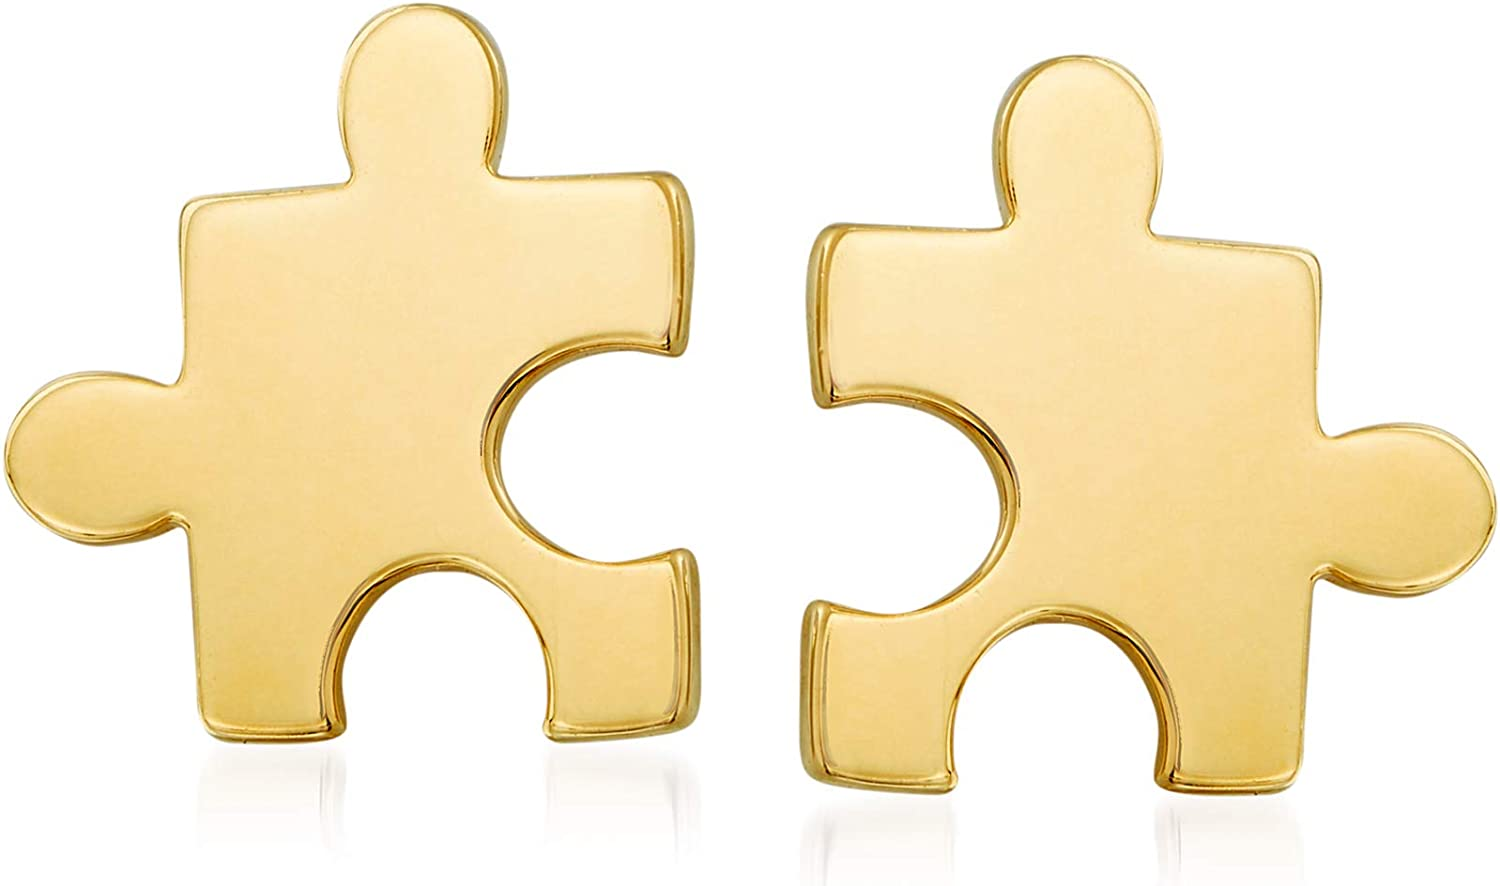 Ross-Simons 14kt Yellow Gold Puzzle Piece Stud Earrings